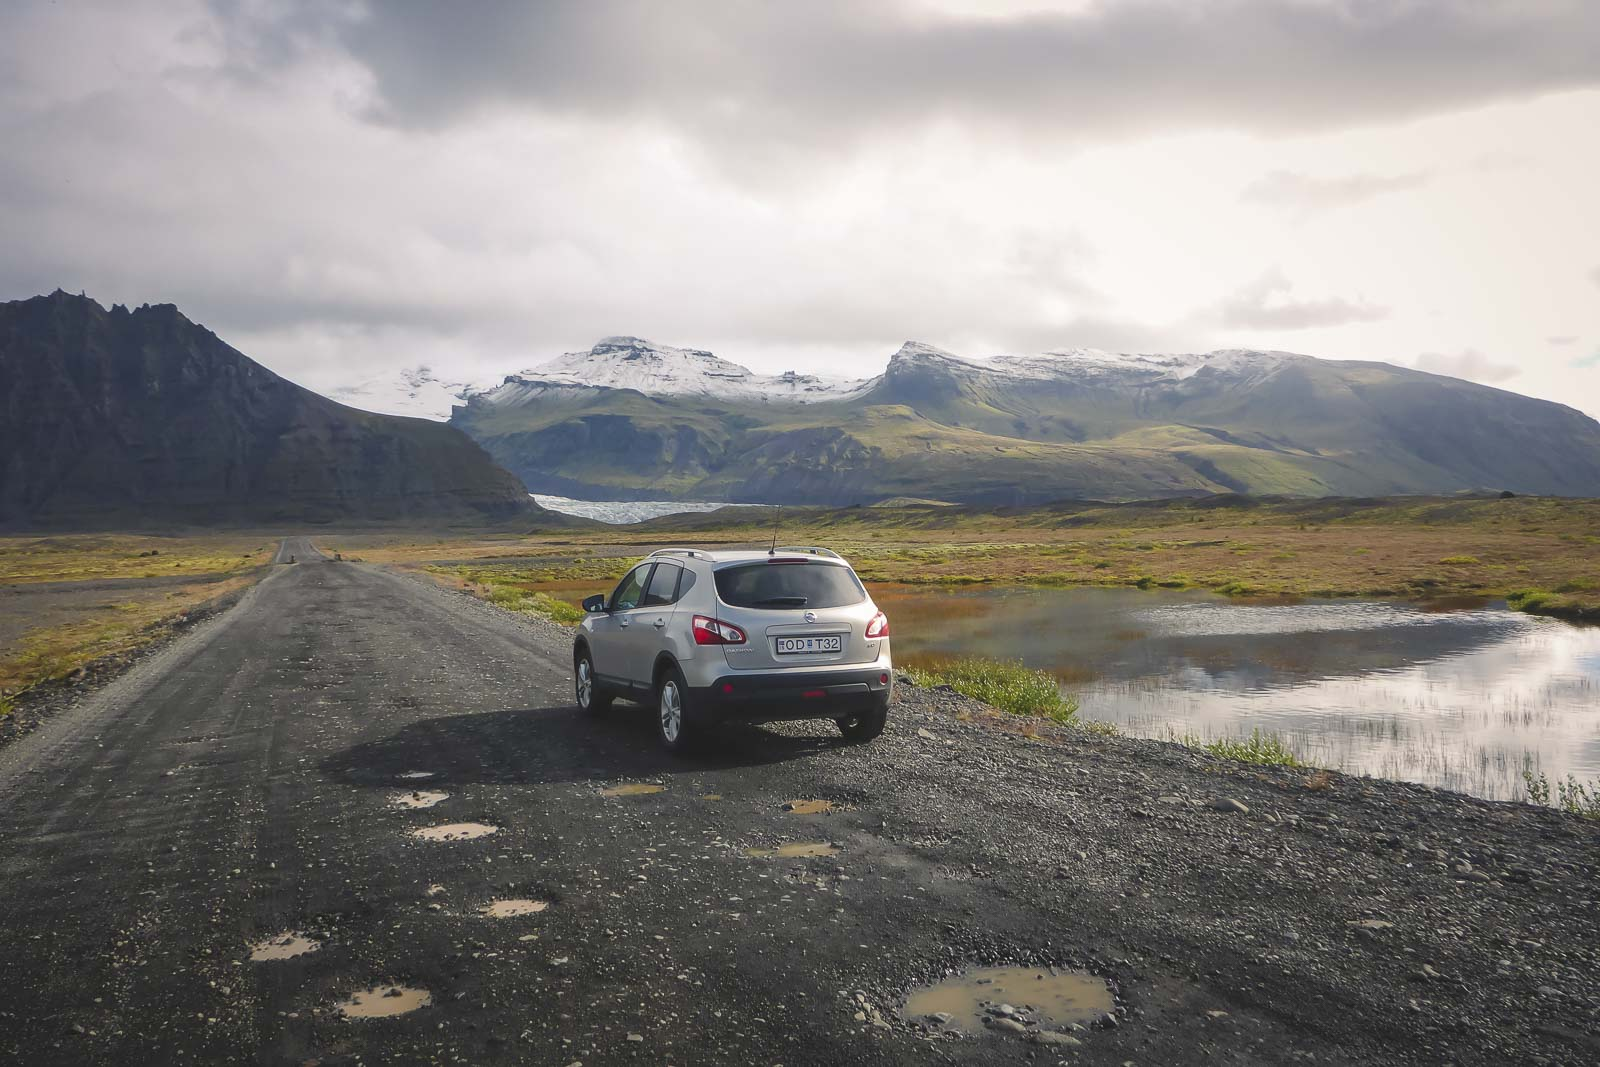 About Driving the Ring Road in Iceland on a Road Trip